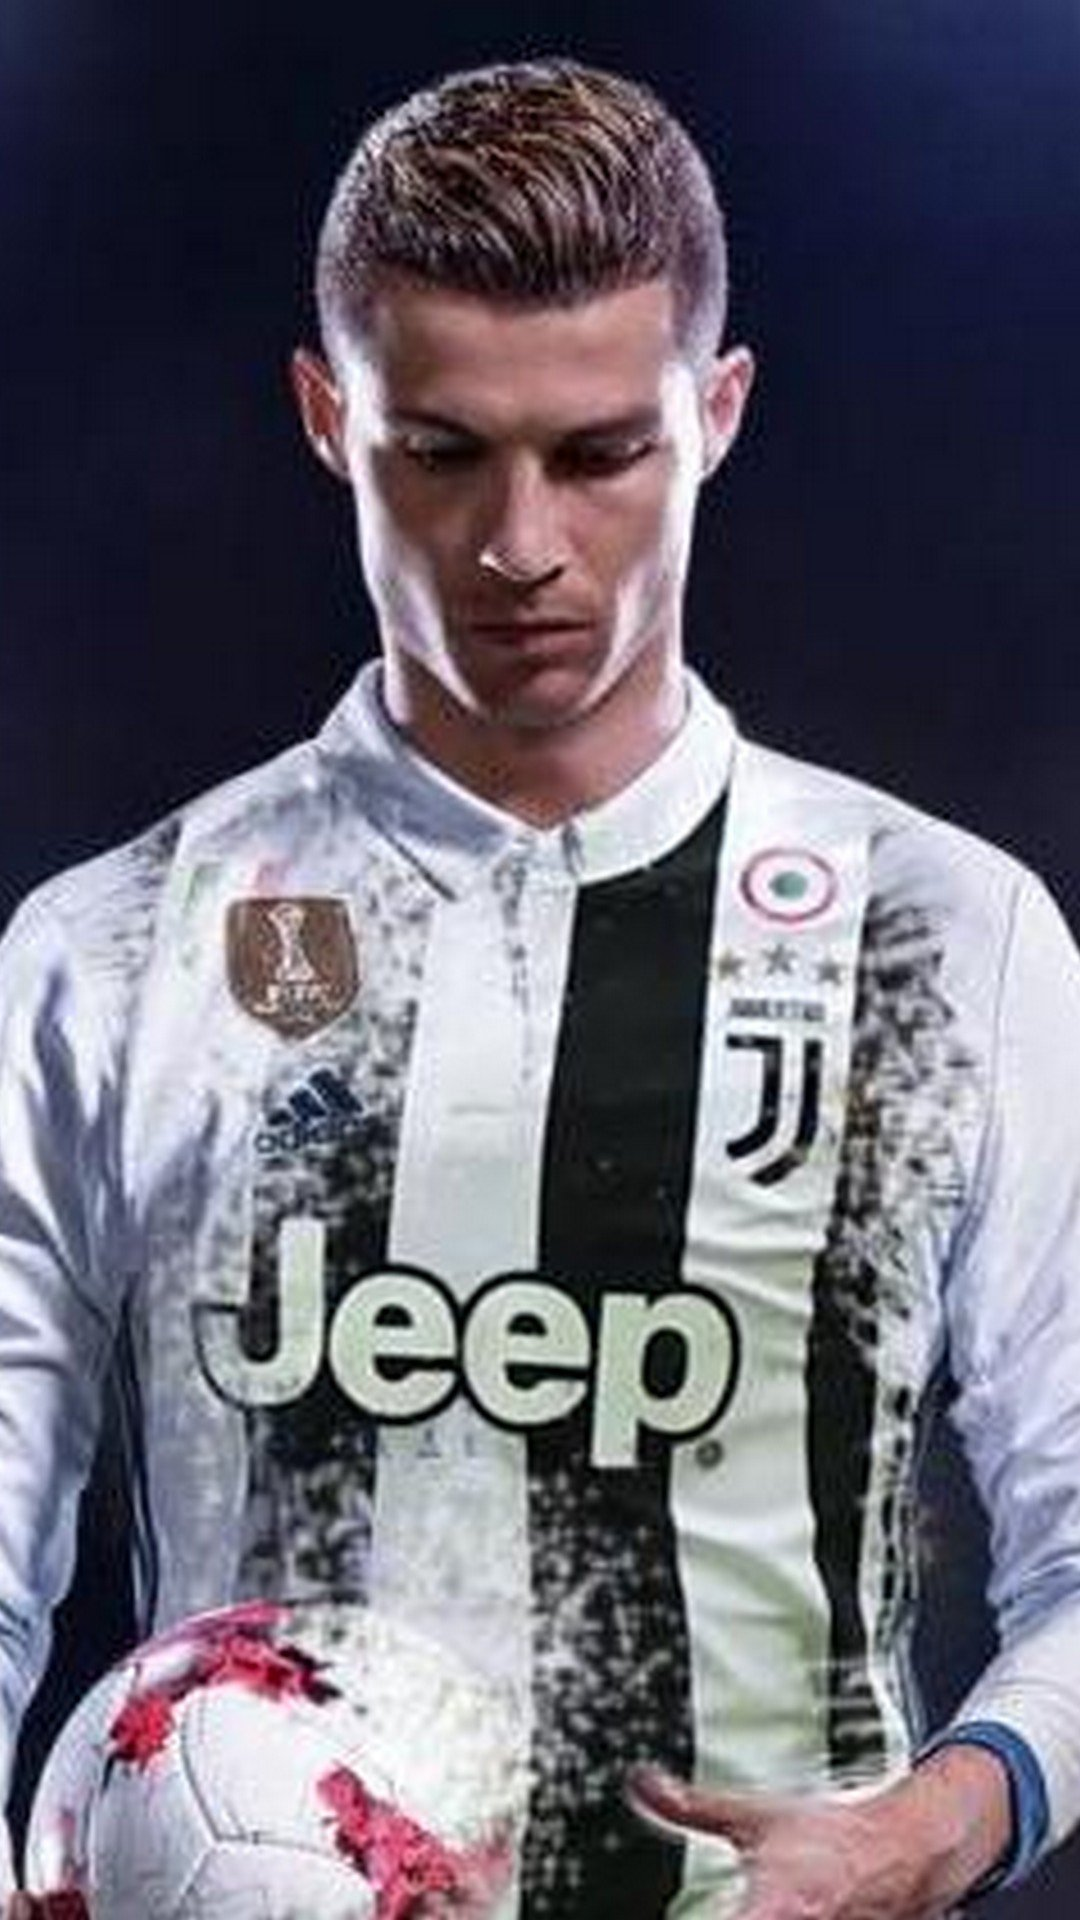 Android Wallpaper Cristiano Ronaldo Juventus   2019 Android Wallpapers 1080x1920